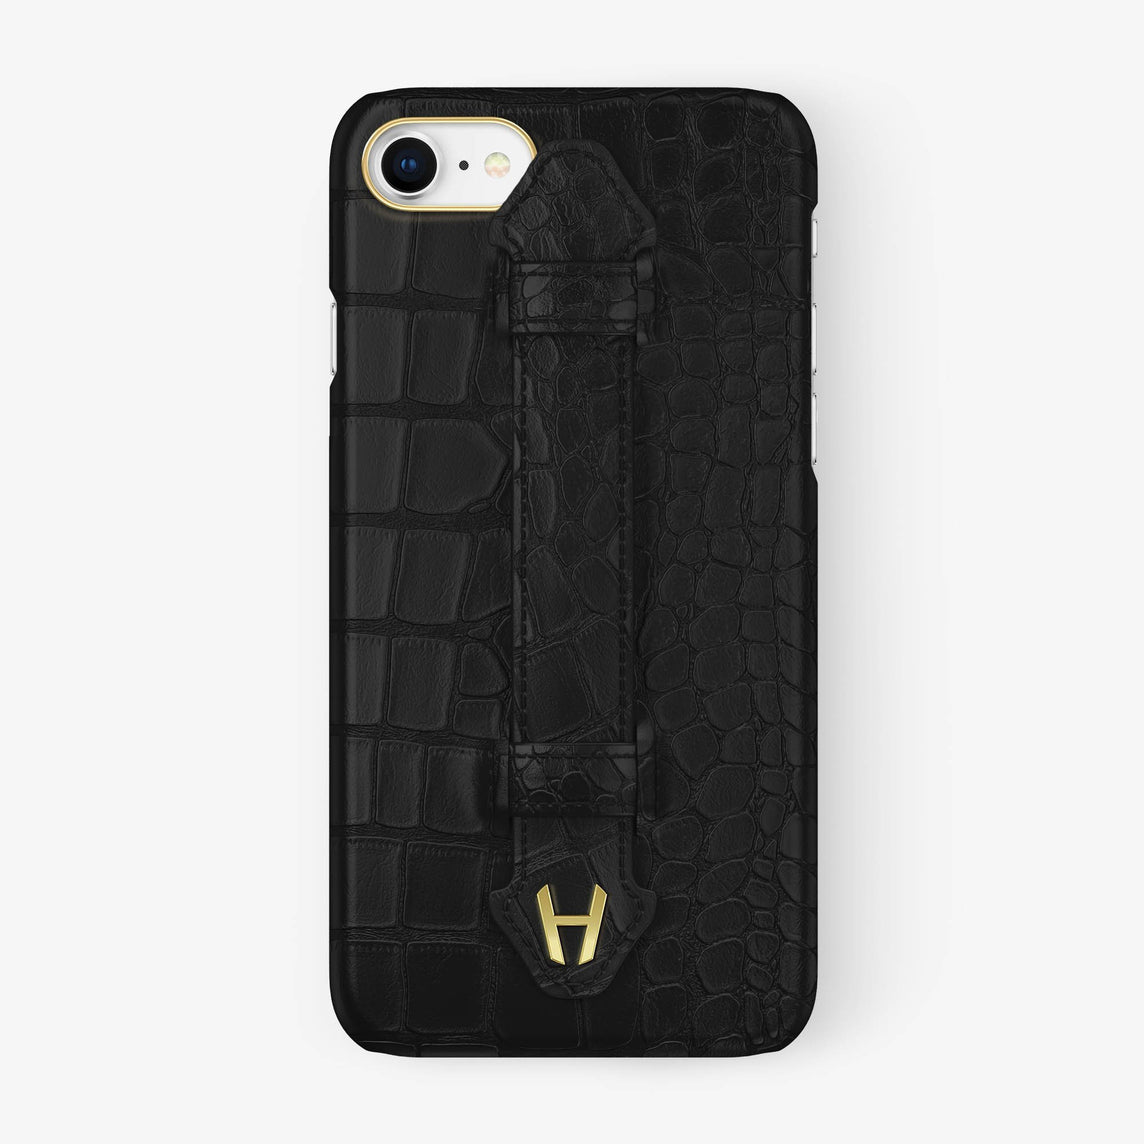 Alligator [iPhone Finger Case] [model:iphone-7-8-case] [colour:phantom-black] [finishing:yellow-gold] - Hadoro